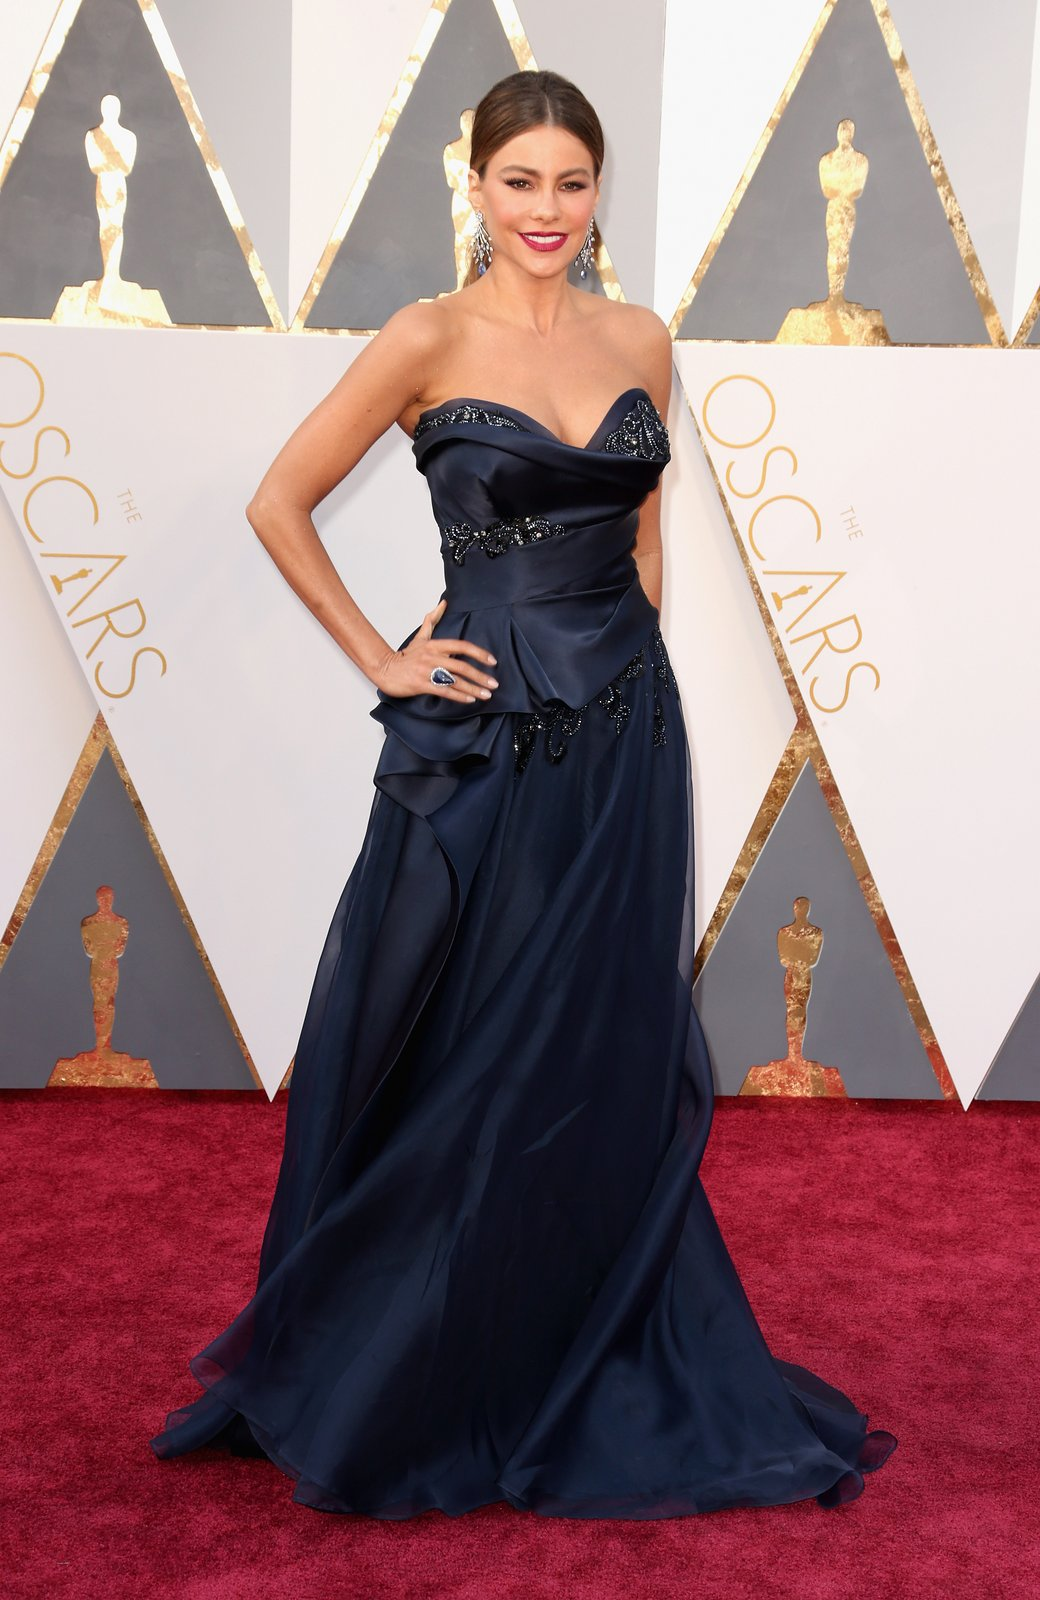 sofia-vergara-oscars-red-carpet-2016.jpg